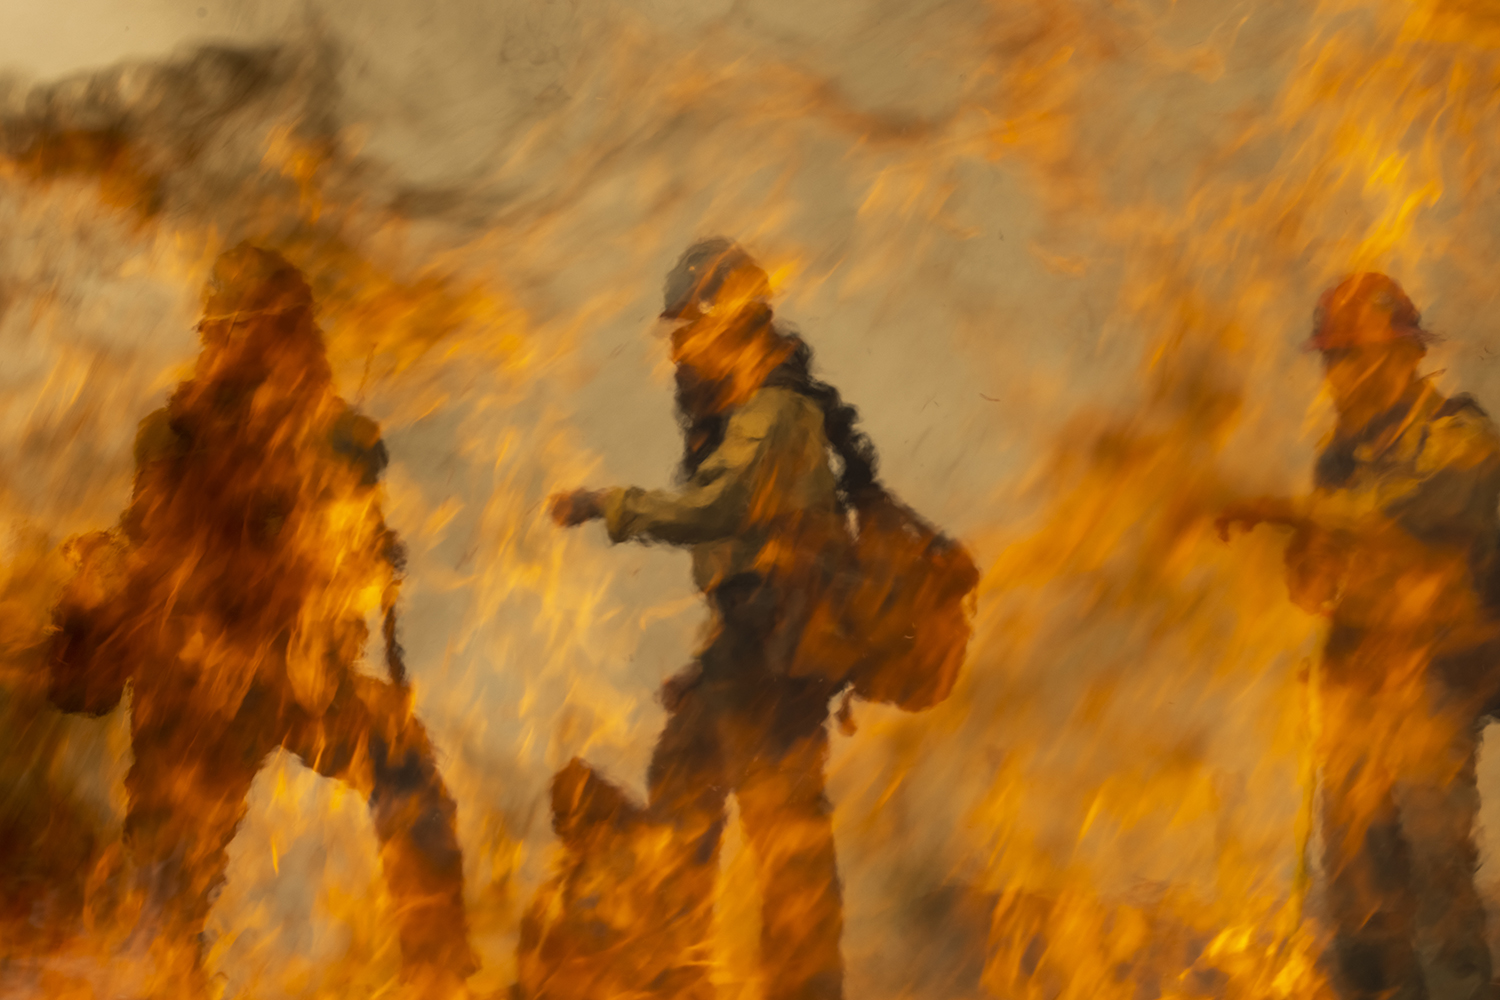 Firefighters in California